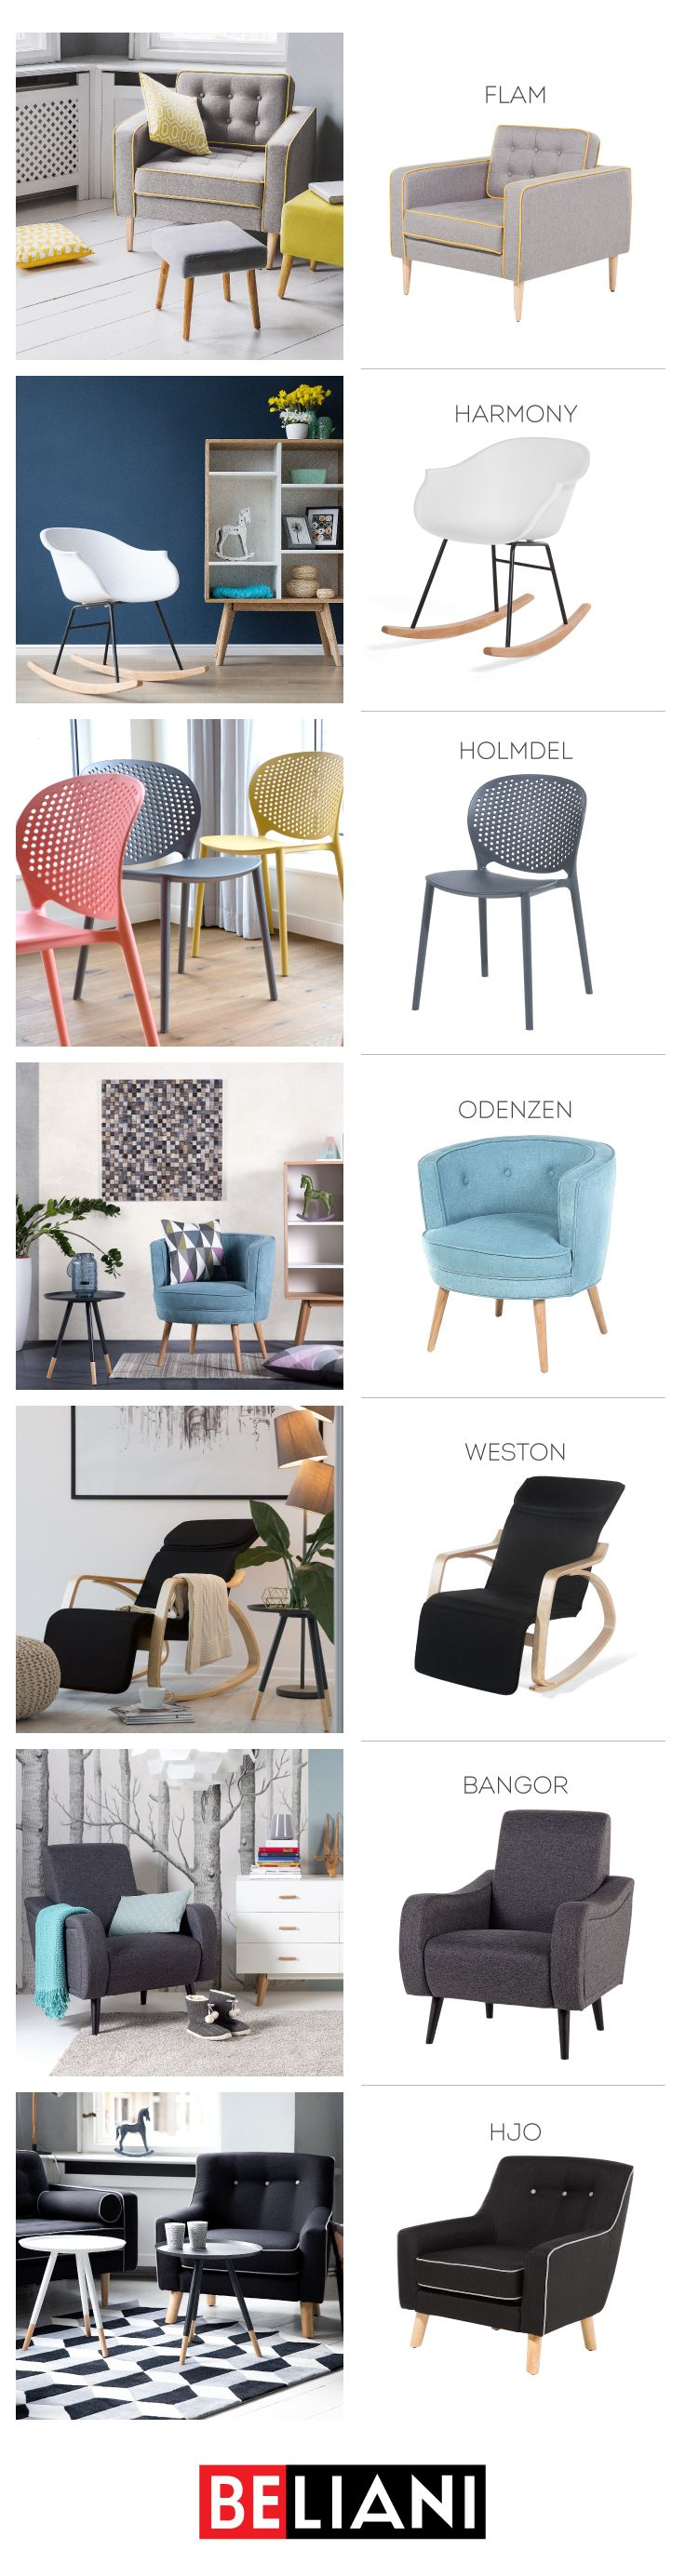 28 best New Home Furniture images on Pinterest